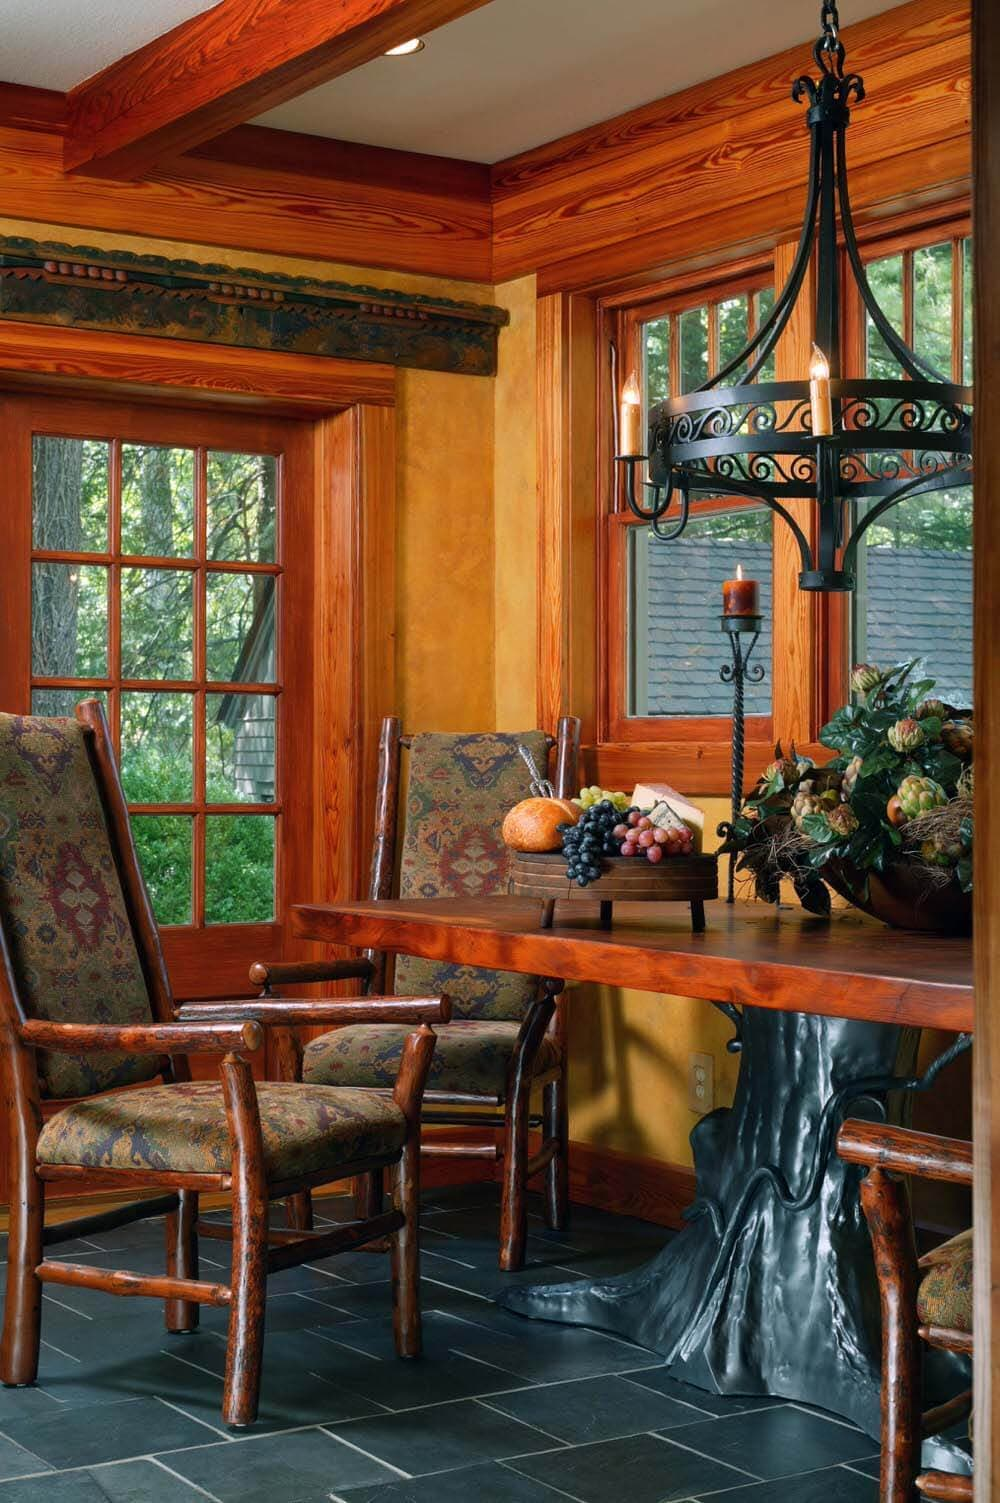 Antique Heart Pine Beams and Cornices in laurel park near hendersonville